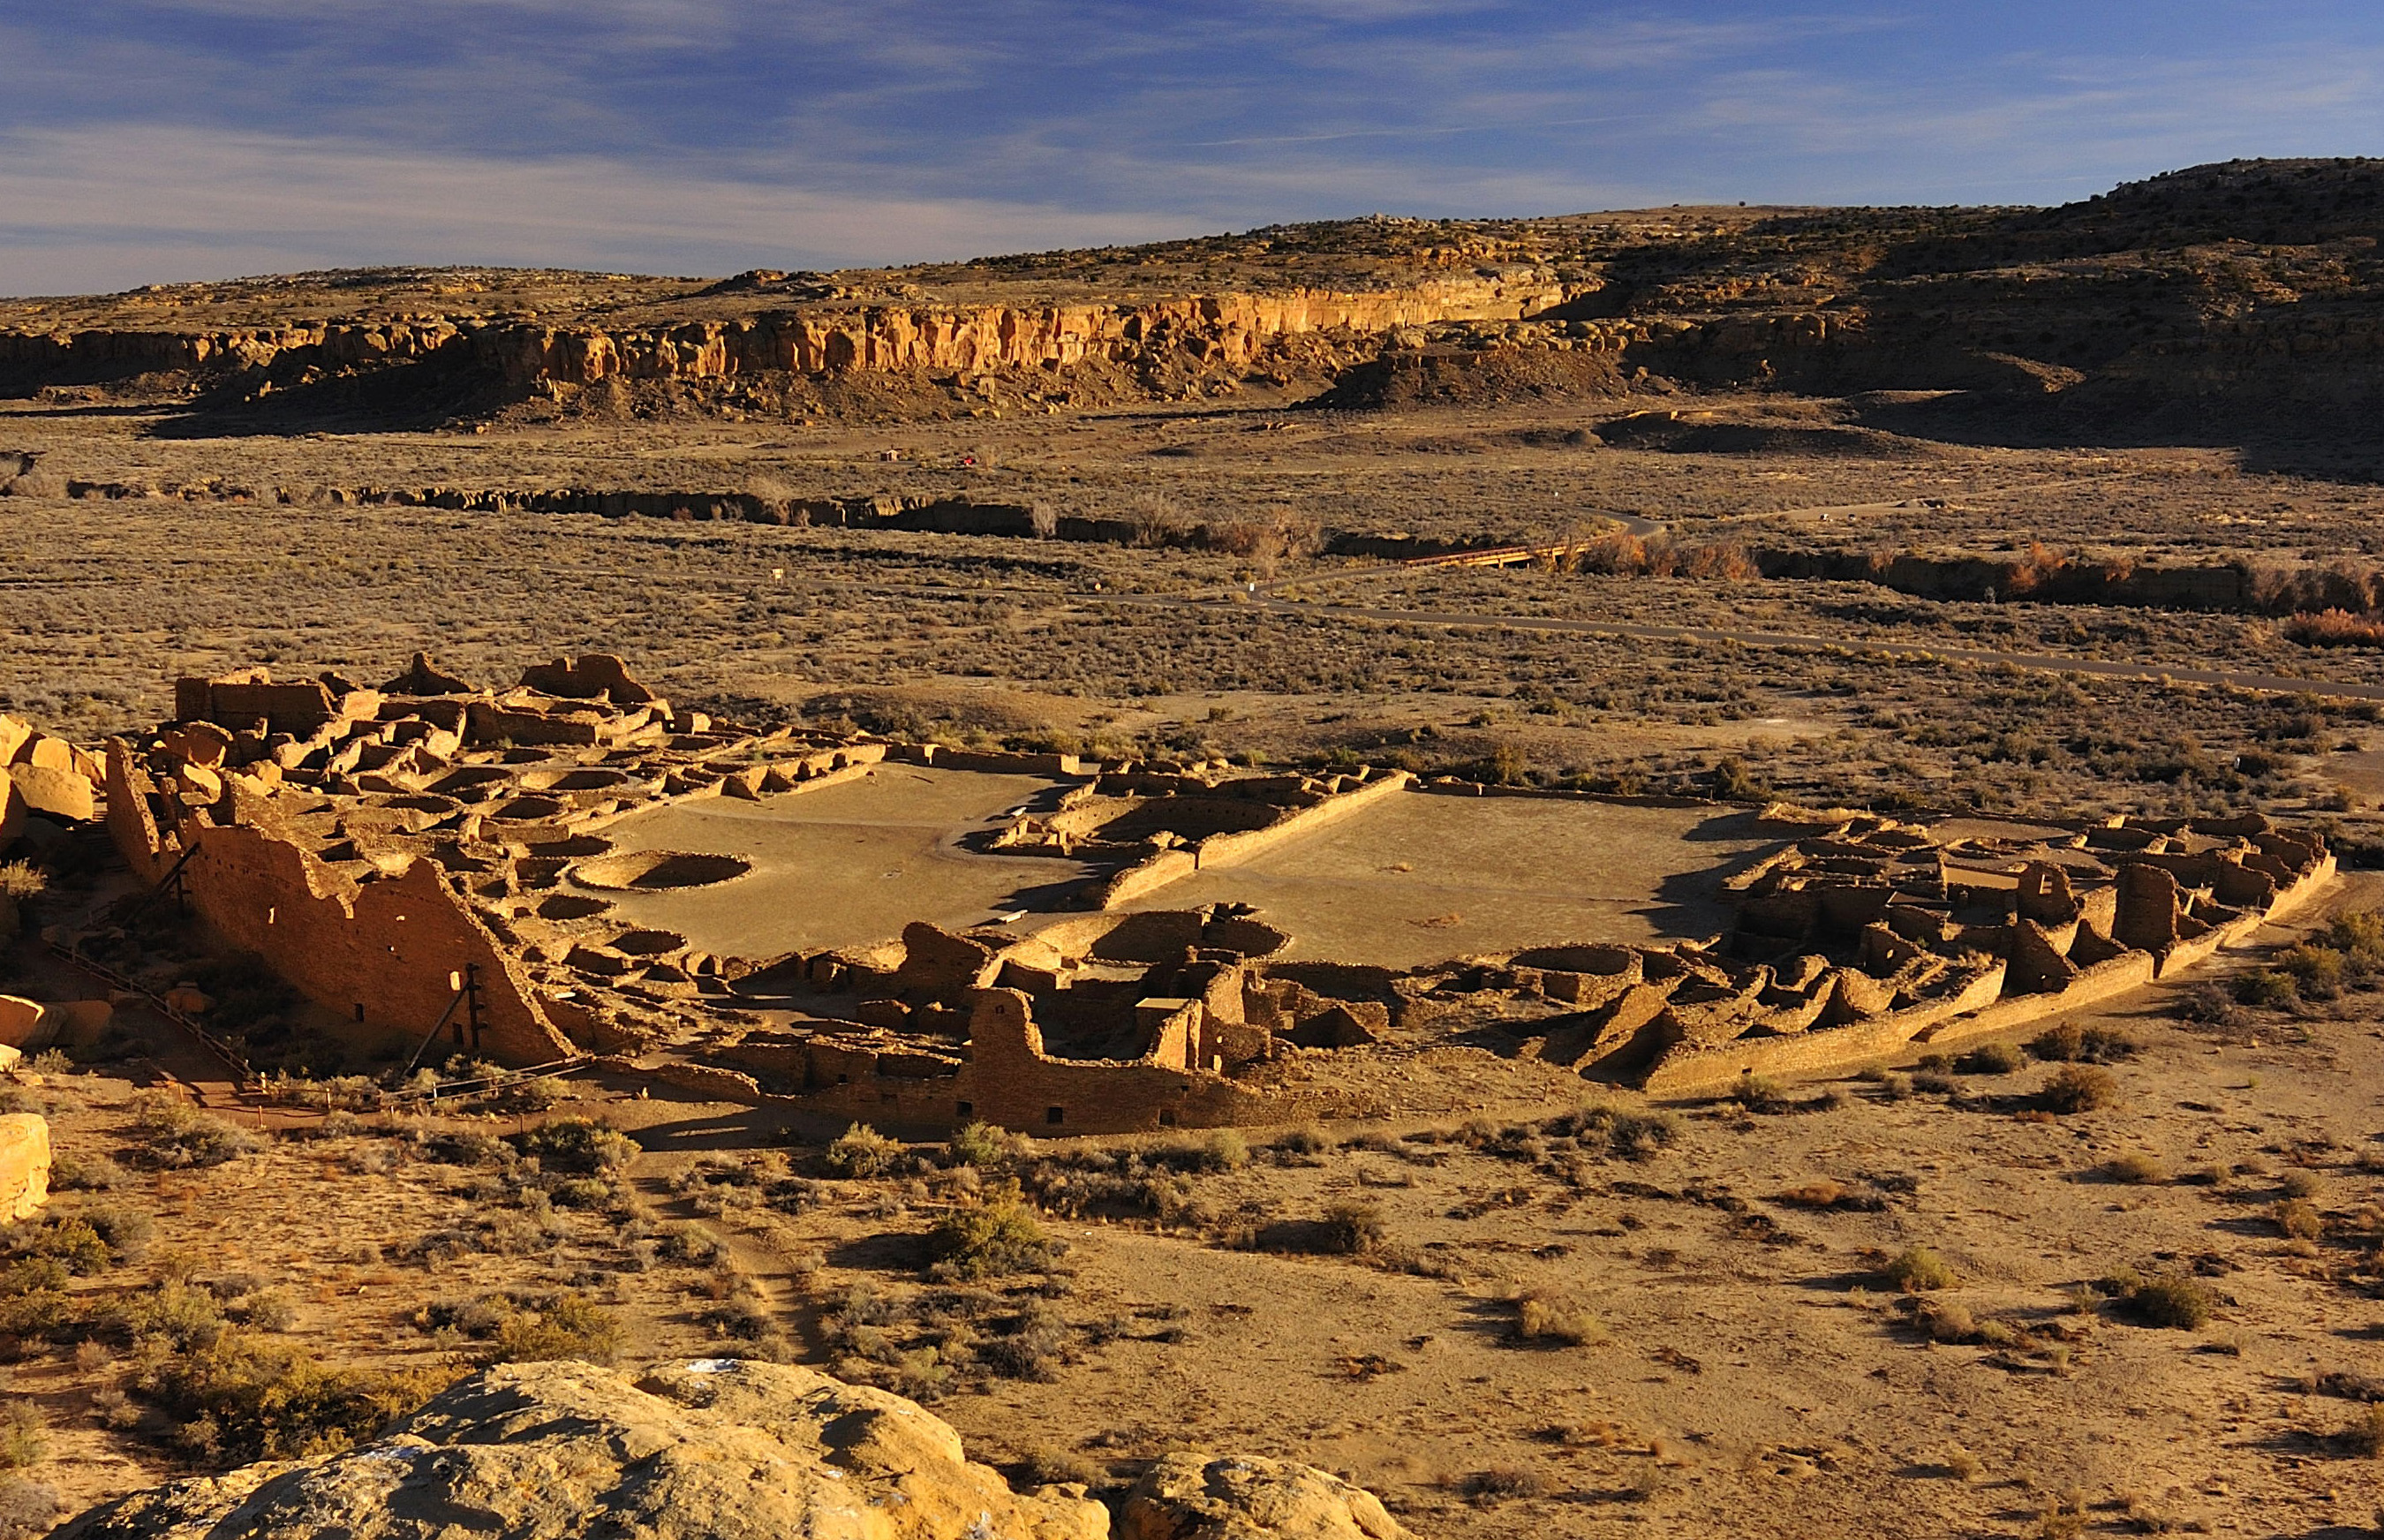 Pueblo Bonito in New Mexico's San Juan Basin; Photo courtesy of Nate Crabtree, http://www.natecrabtreephotography.com.